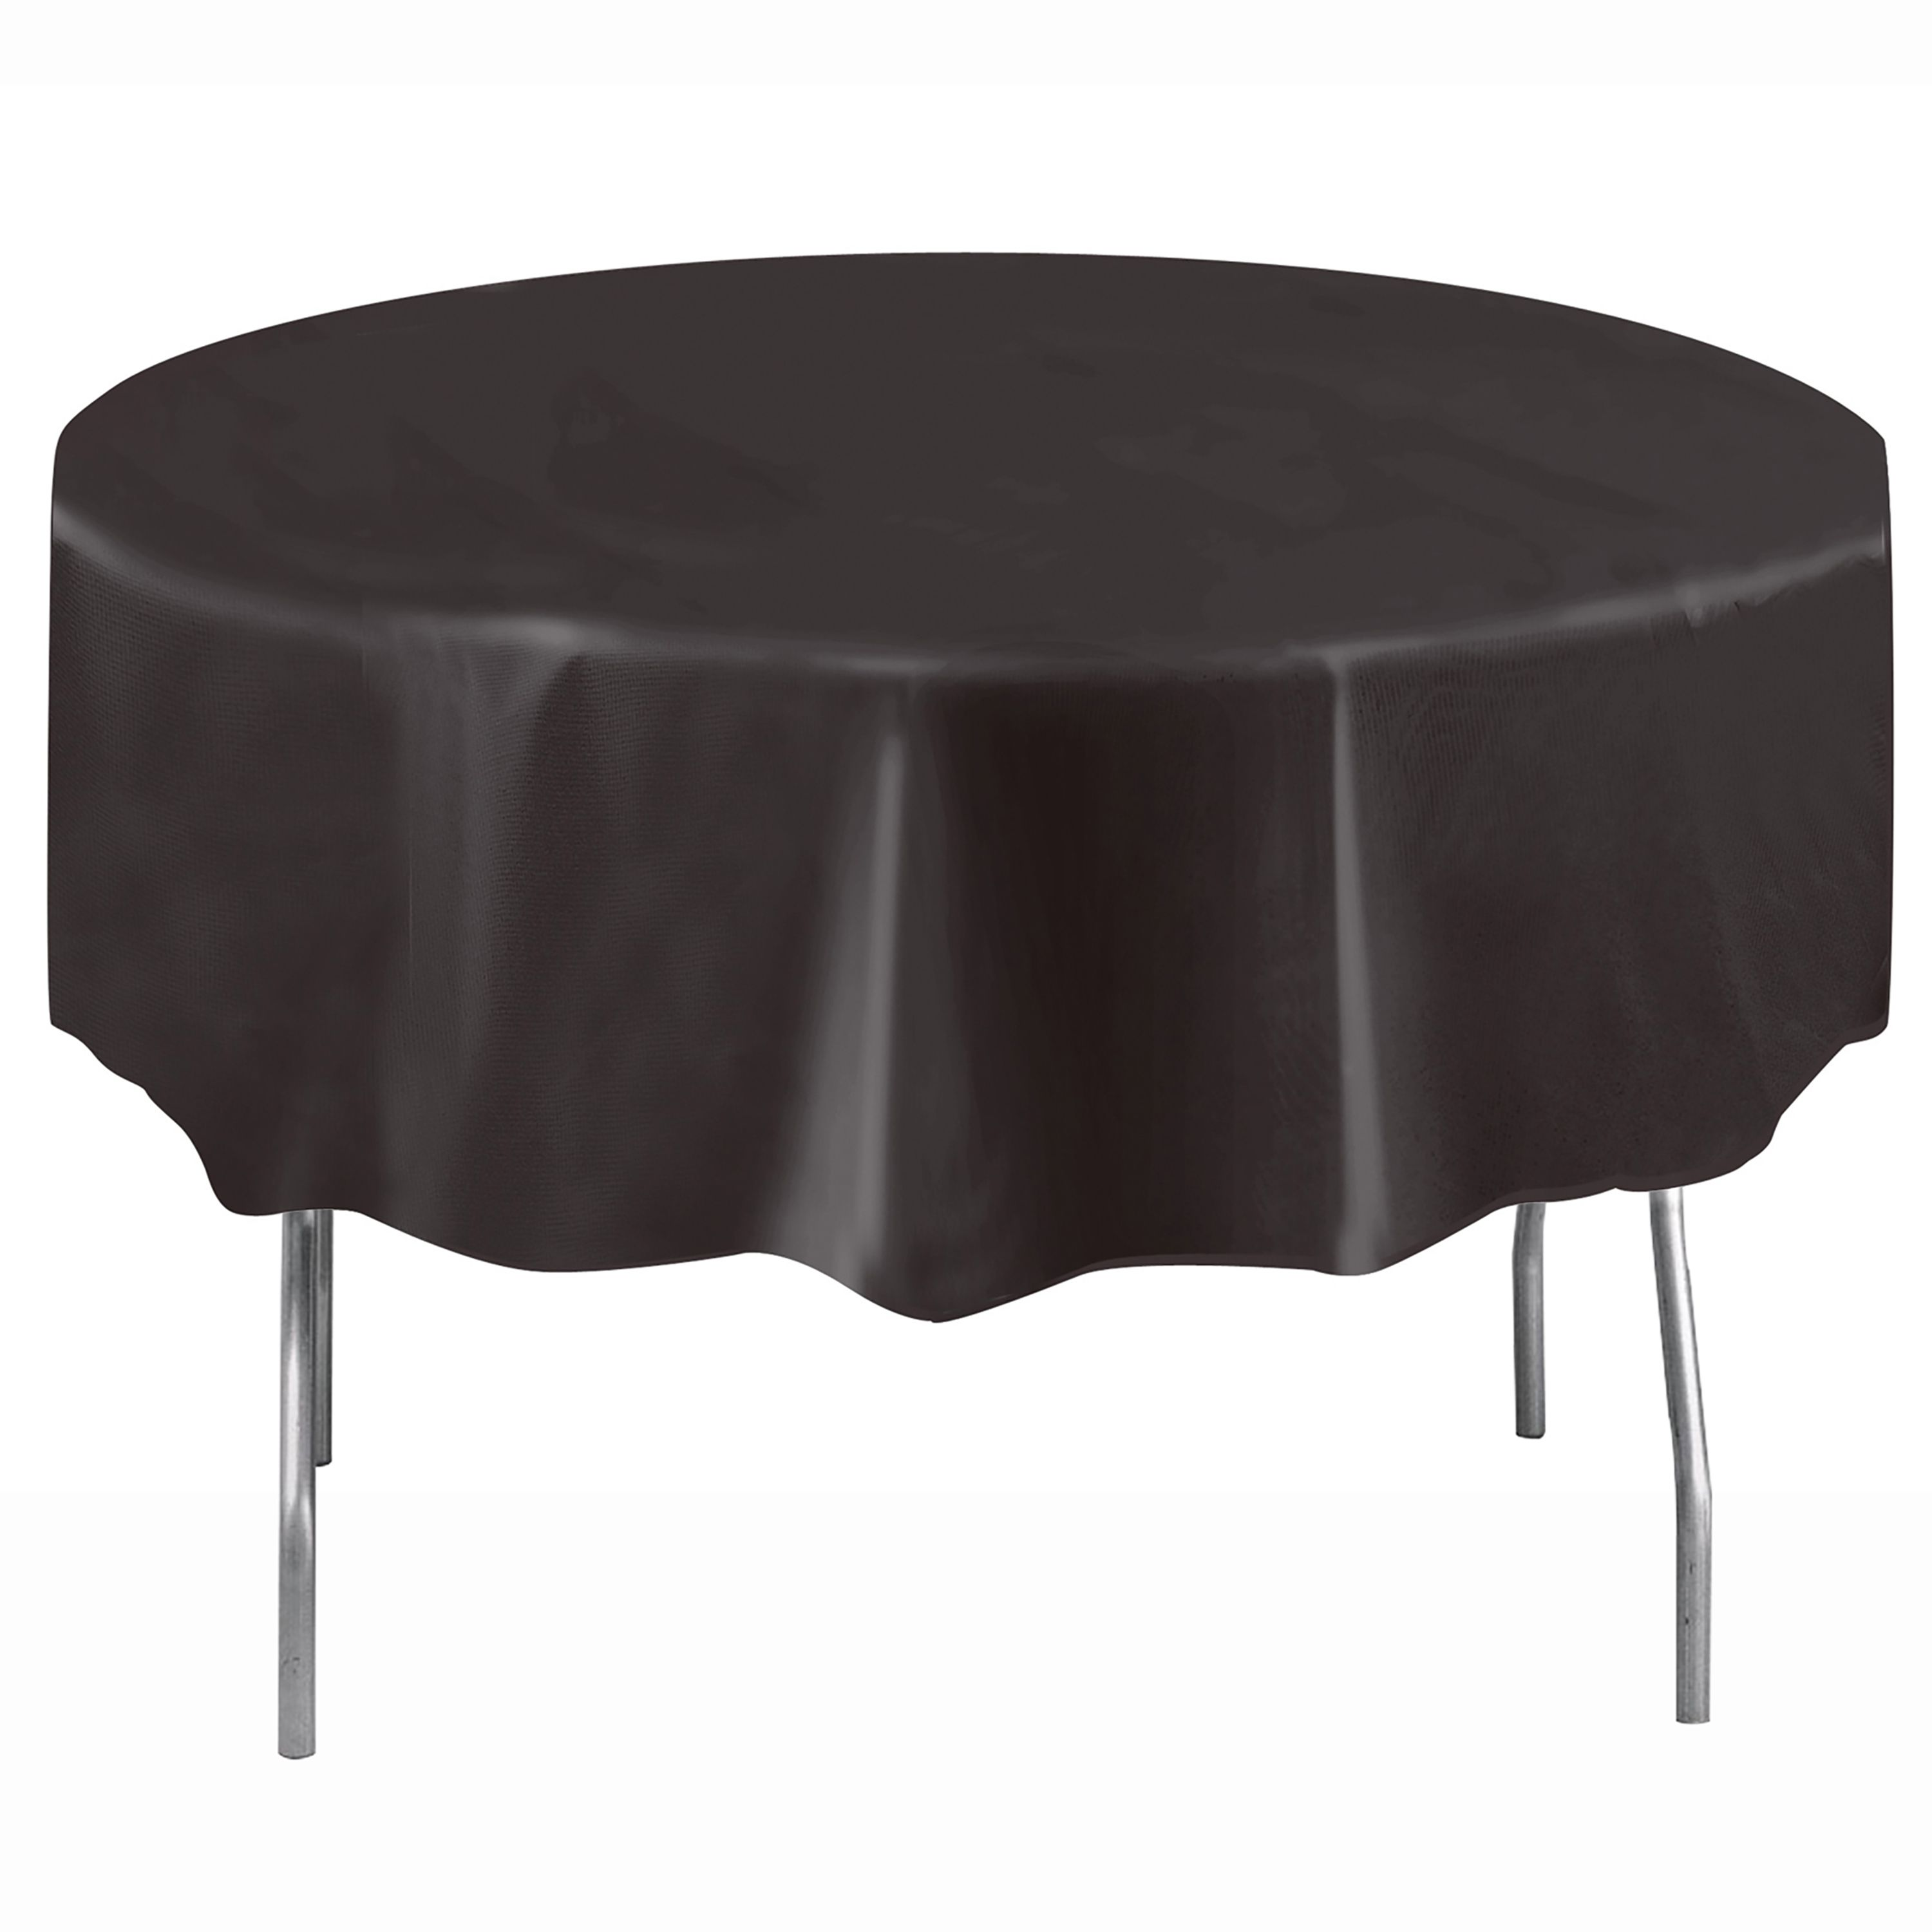 Plastic Round Tablecloth 84 In Black 1ct Walmart Com In 2020 Round Tablecloth Table Cloth Black Tablecloth